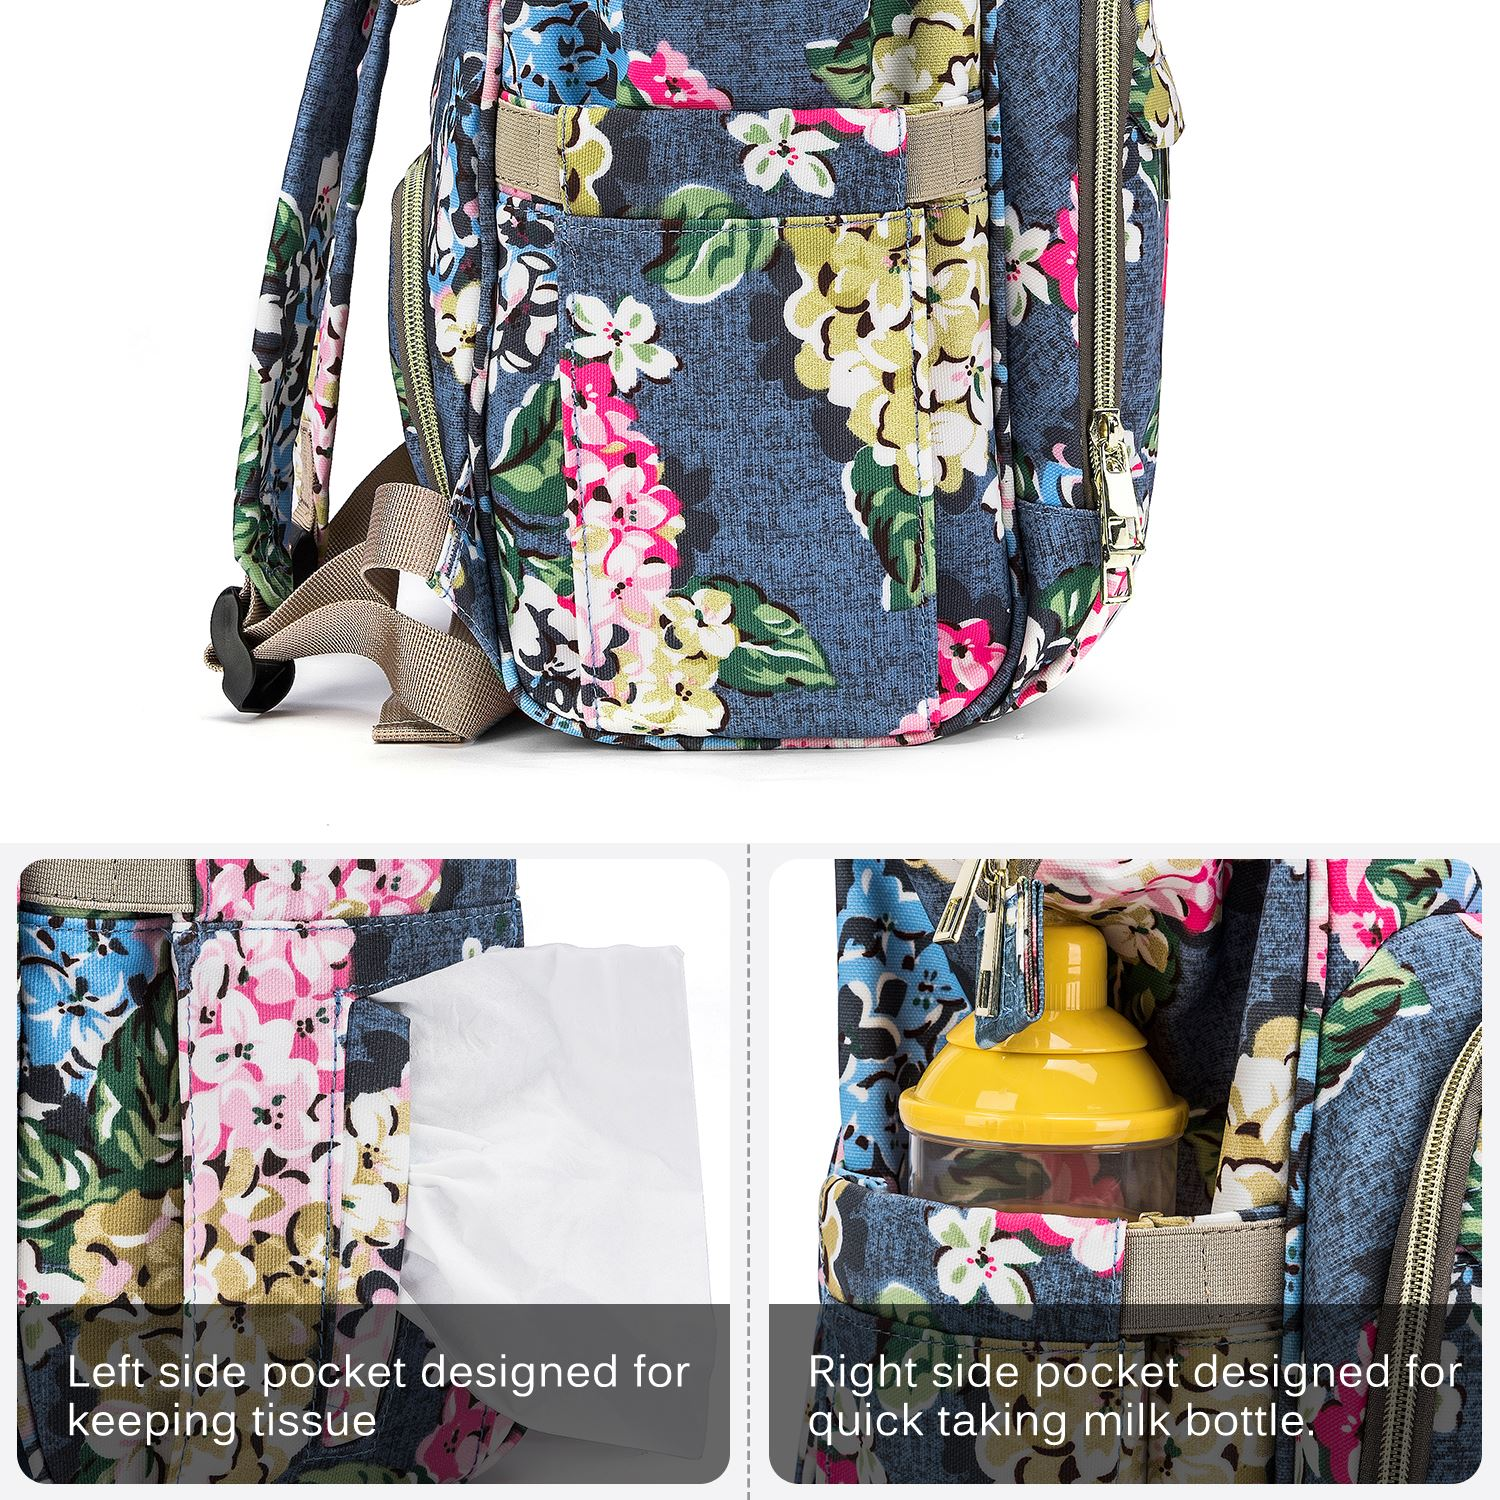 CoolBELL Baby Diaper Bag Fashion Mummy Maternity Nappy Bag Large Capacity Travel Backpack Baby Care Nursing Stroller Bags